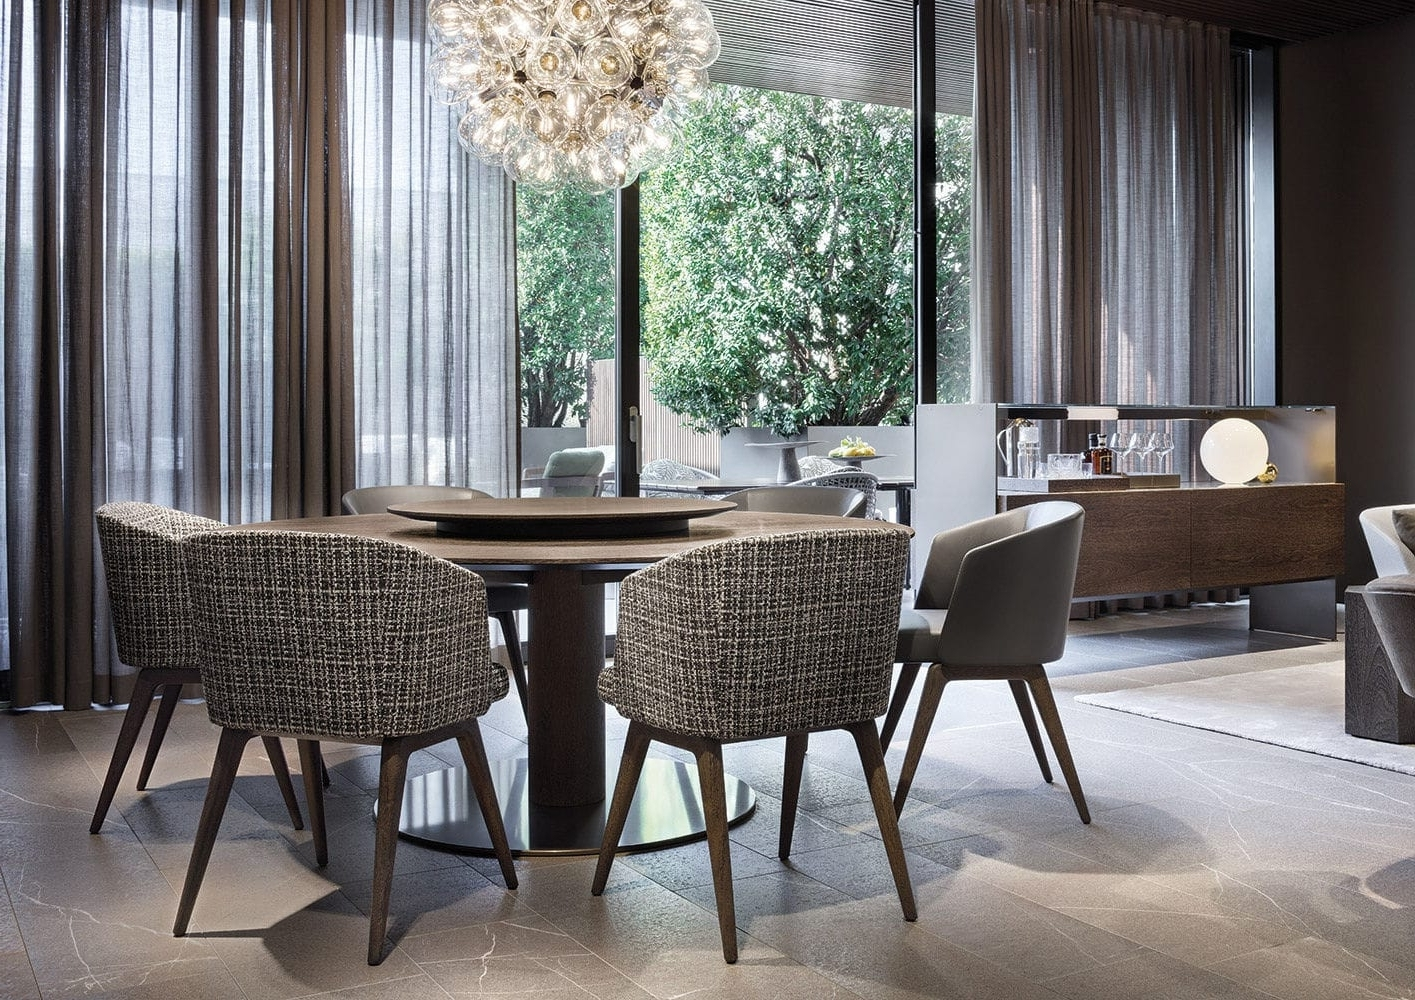 Bellagio Dining Tables Intended For Fashionable Contemporary Dining Table / Wooden / Metal / Rectangular – Bellagio (View 10 of 25)